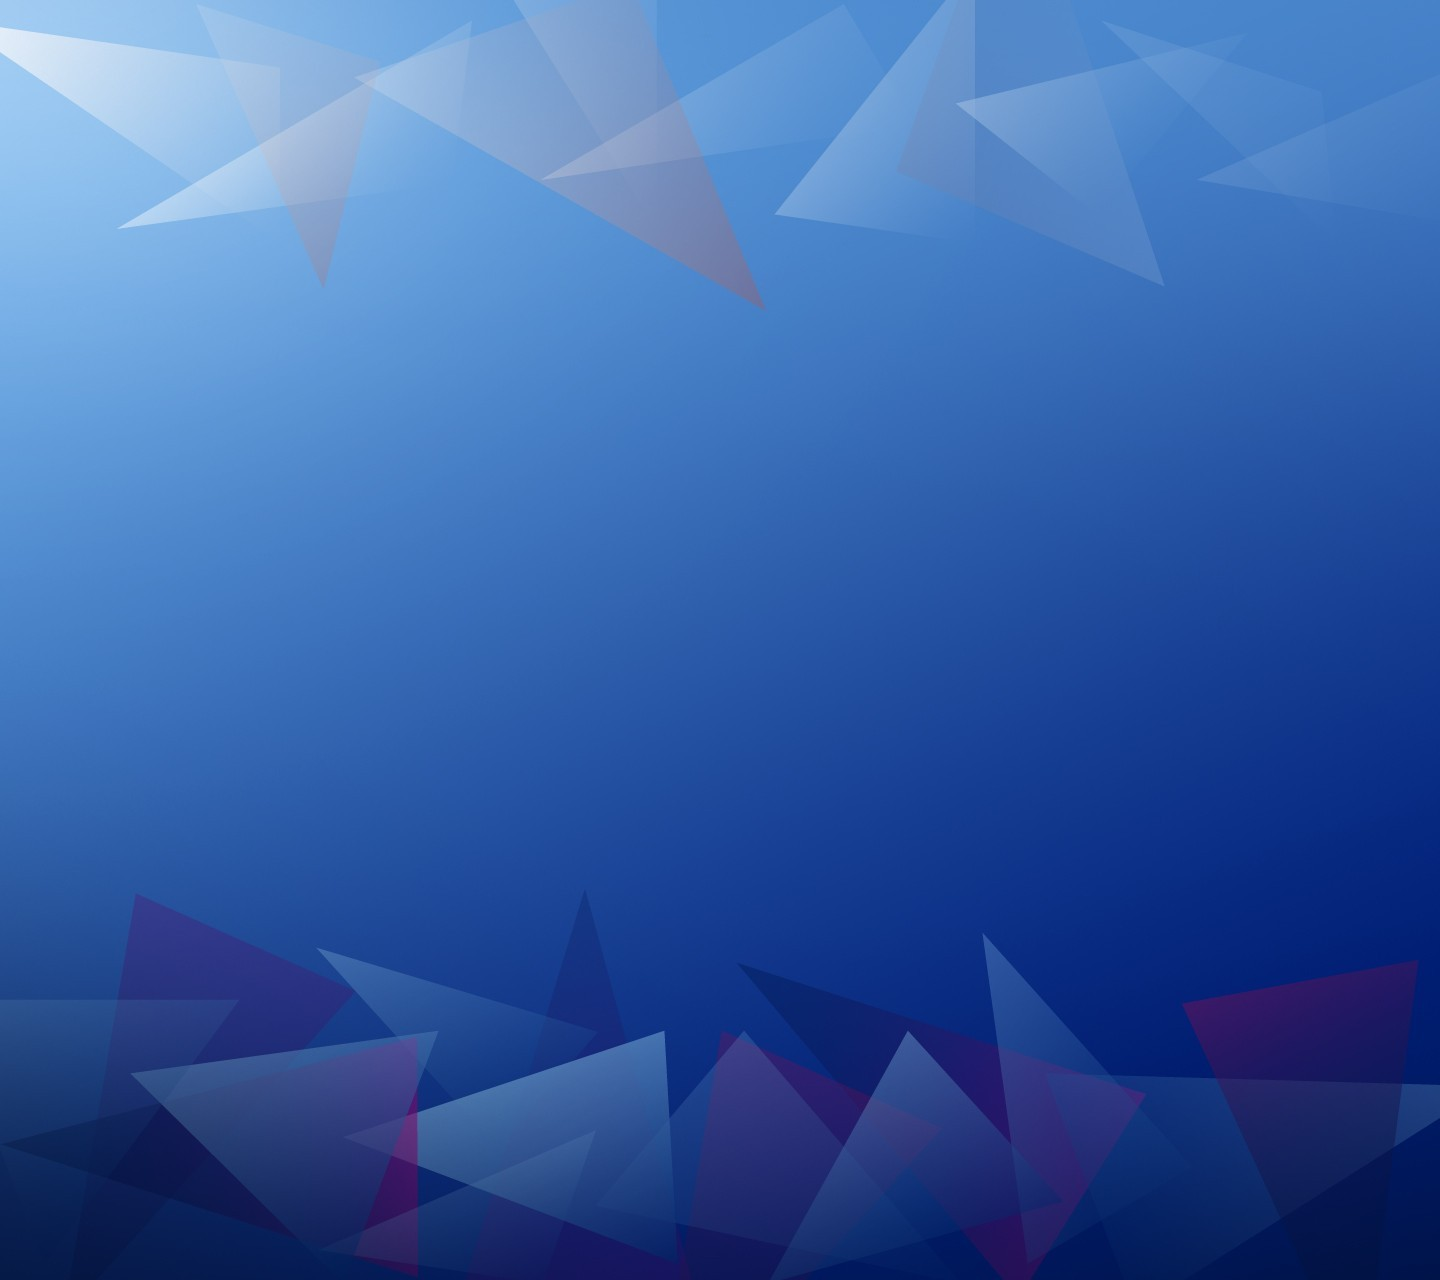 Abstract Blue Shapes Graphic Design 2d Triangles Wallpaper 151 on Down Load Mozilla Firefox